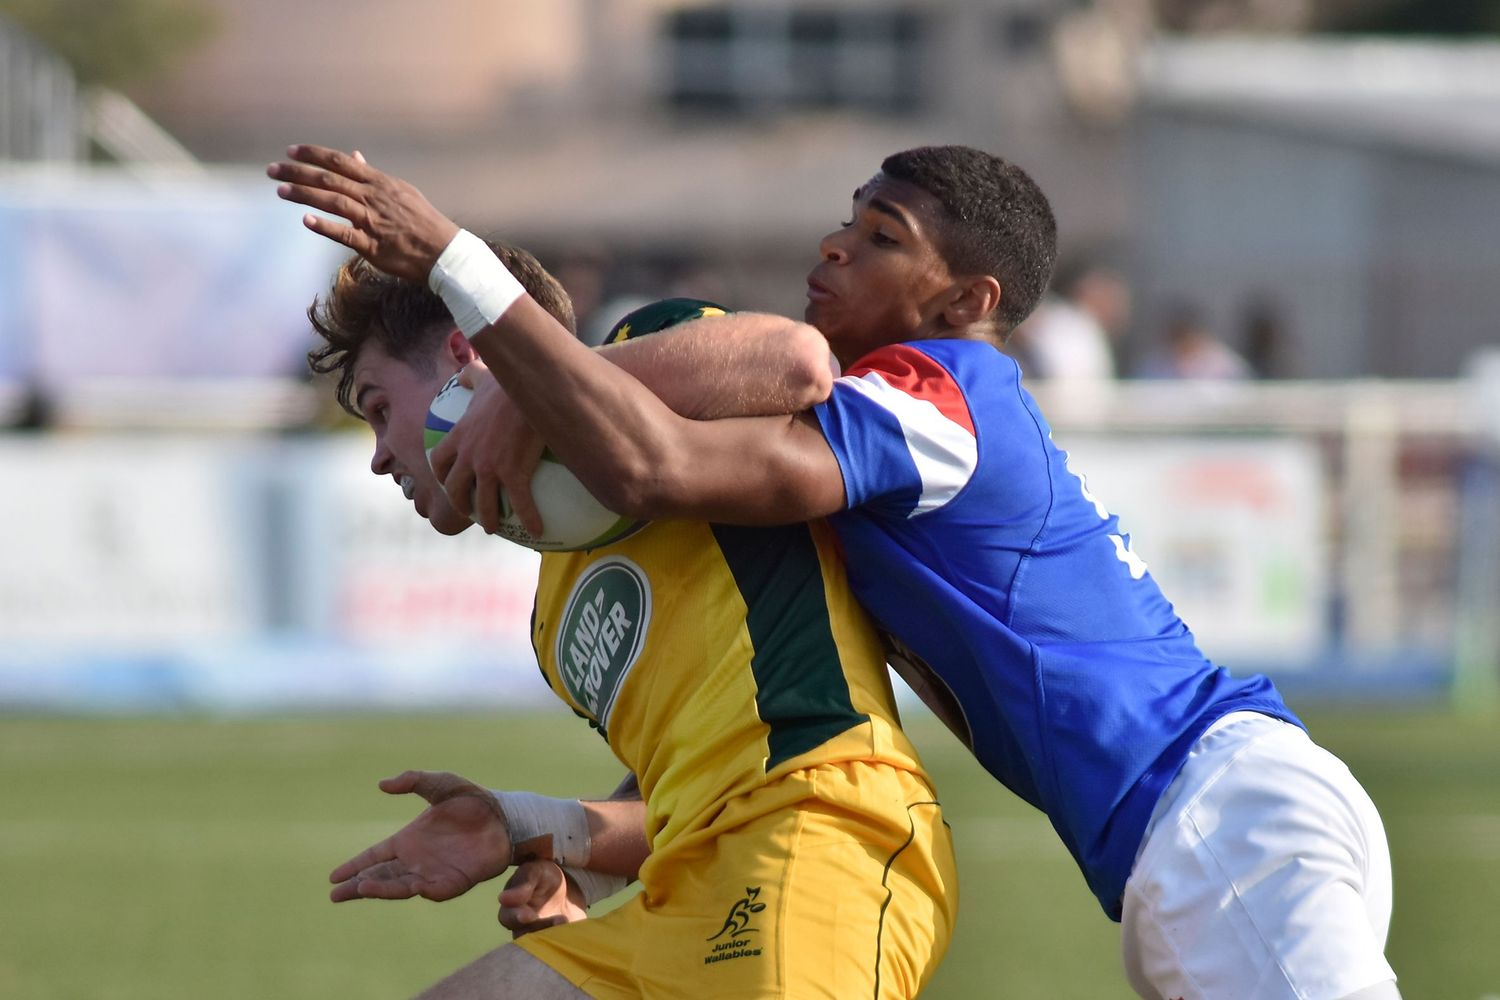 World Rugby U20 Championship 2019: Final - Australia v France